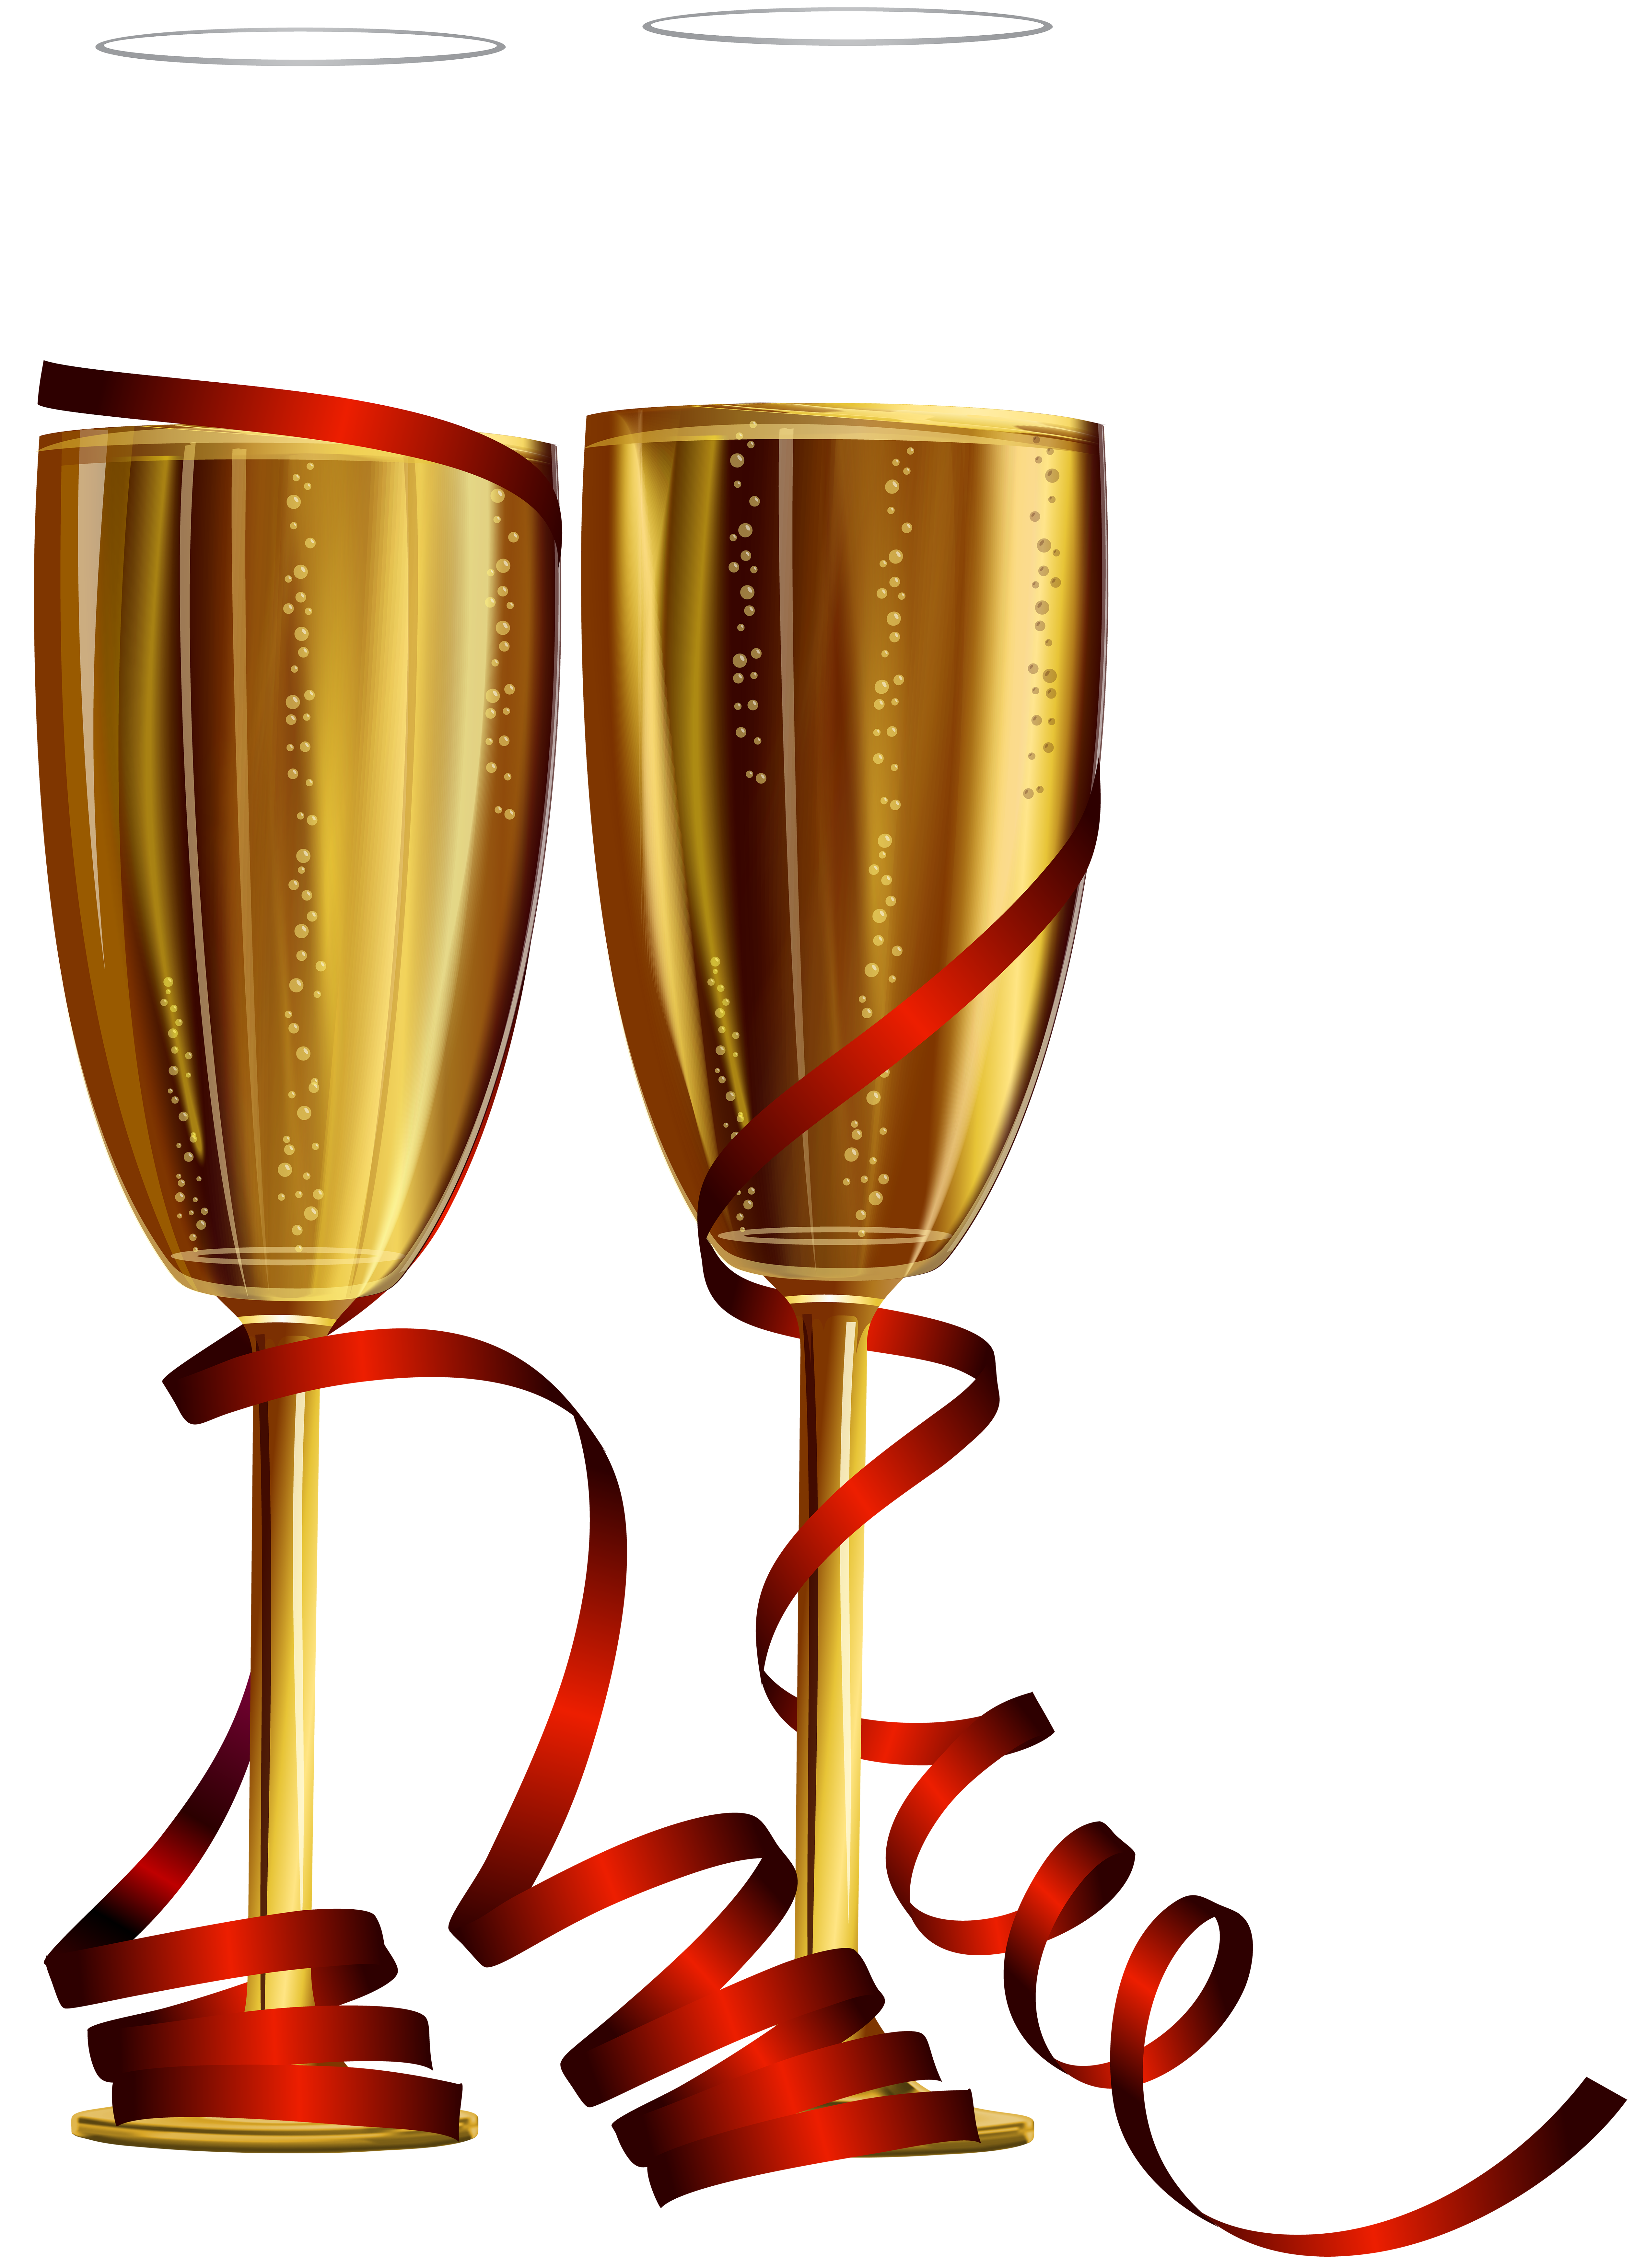 Champagne glasses clipart png. New year clip art